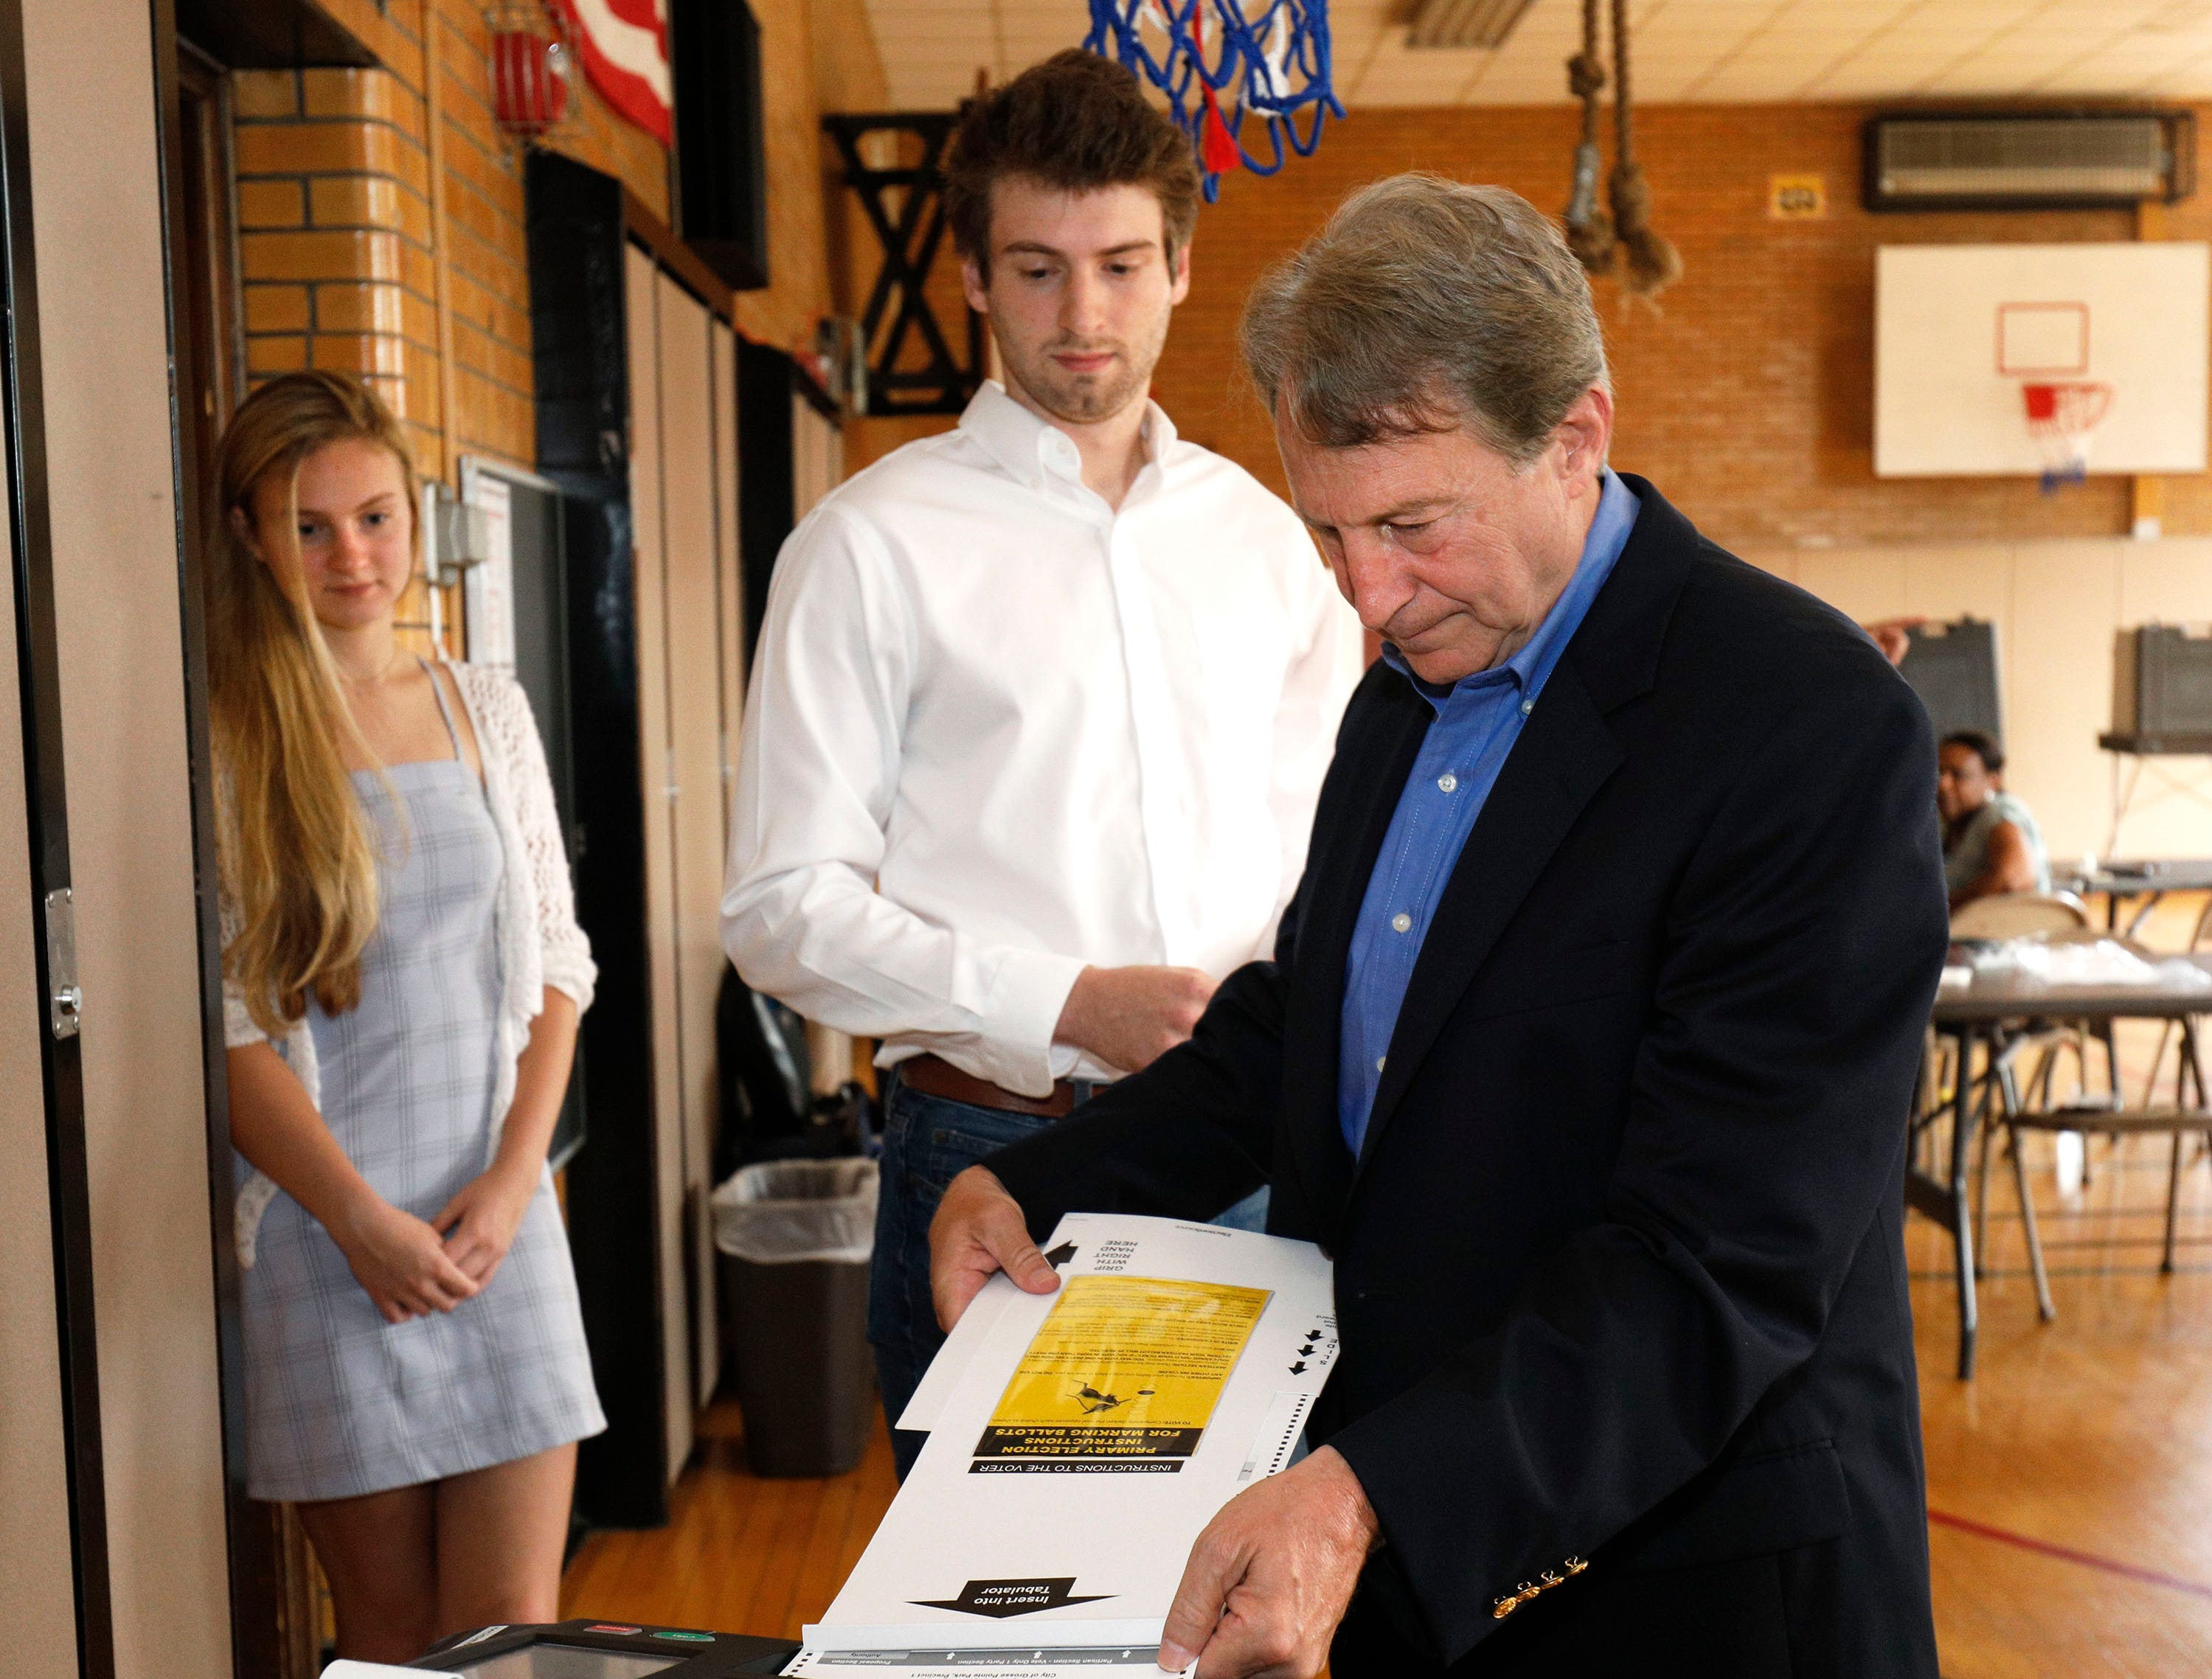 Sandy Pensler, Michigan Republican candidate for the U.S. Senate, puts his election ballot into the ballot machine while his son Jonathon and daughter Natasha watch as he votes in the Michigan Primary election at Trombly School August 7, 2018 in Grosse Pointe Park, Michigan. Pensler's opponent, Republican John James, has received President Donald Trump's endorsement.